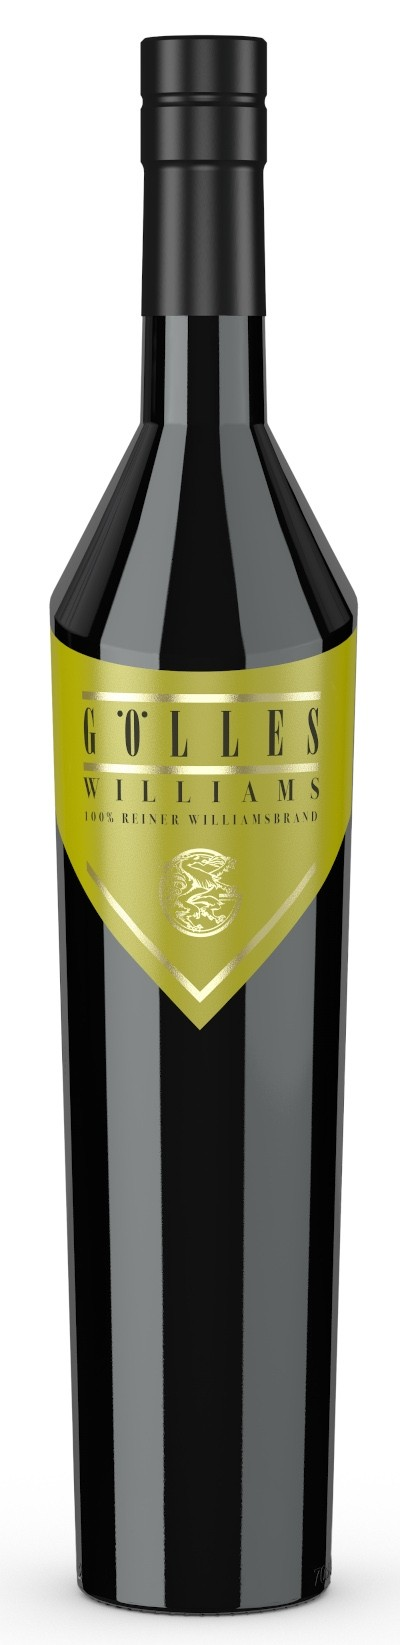 Gölles - Williams